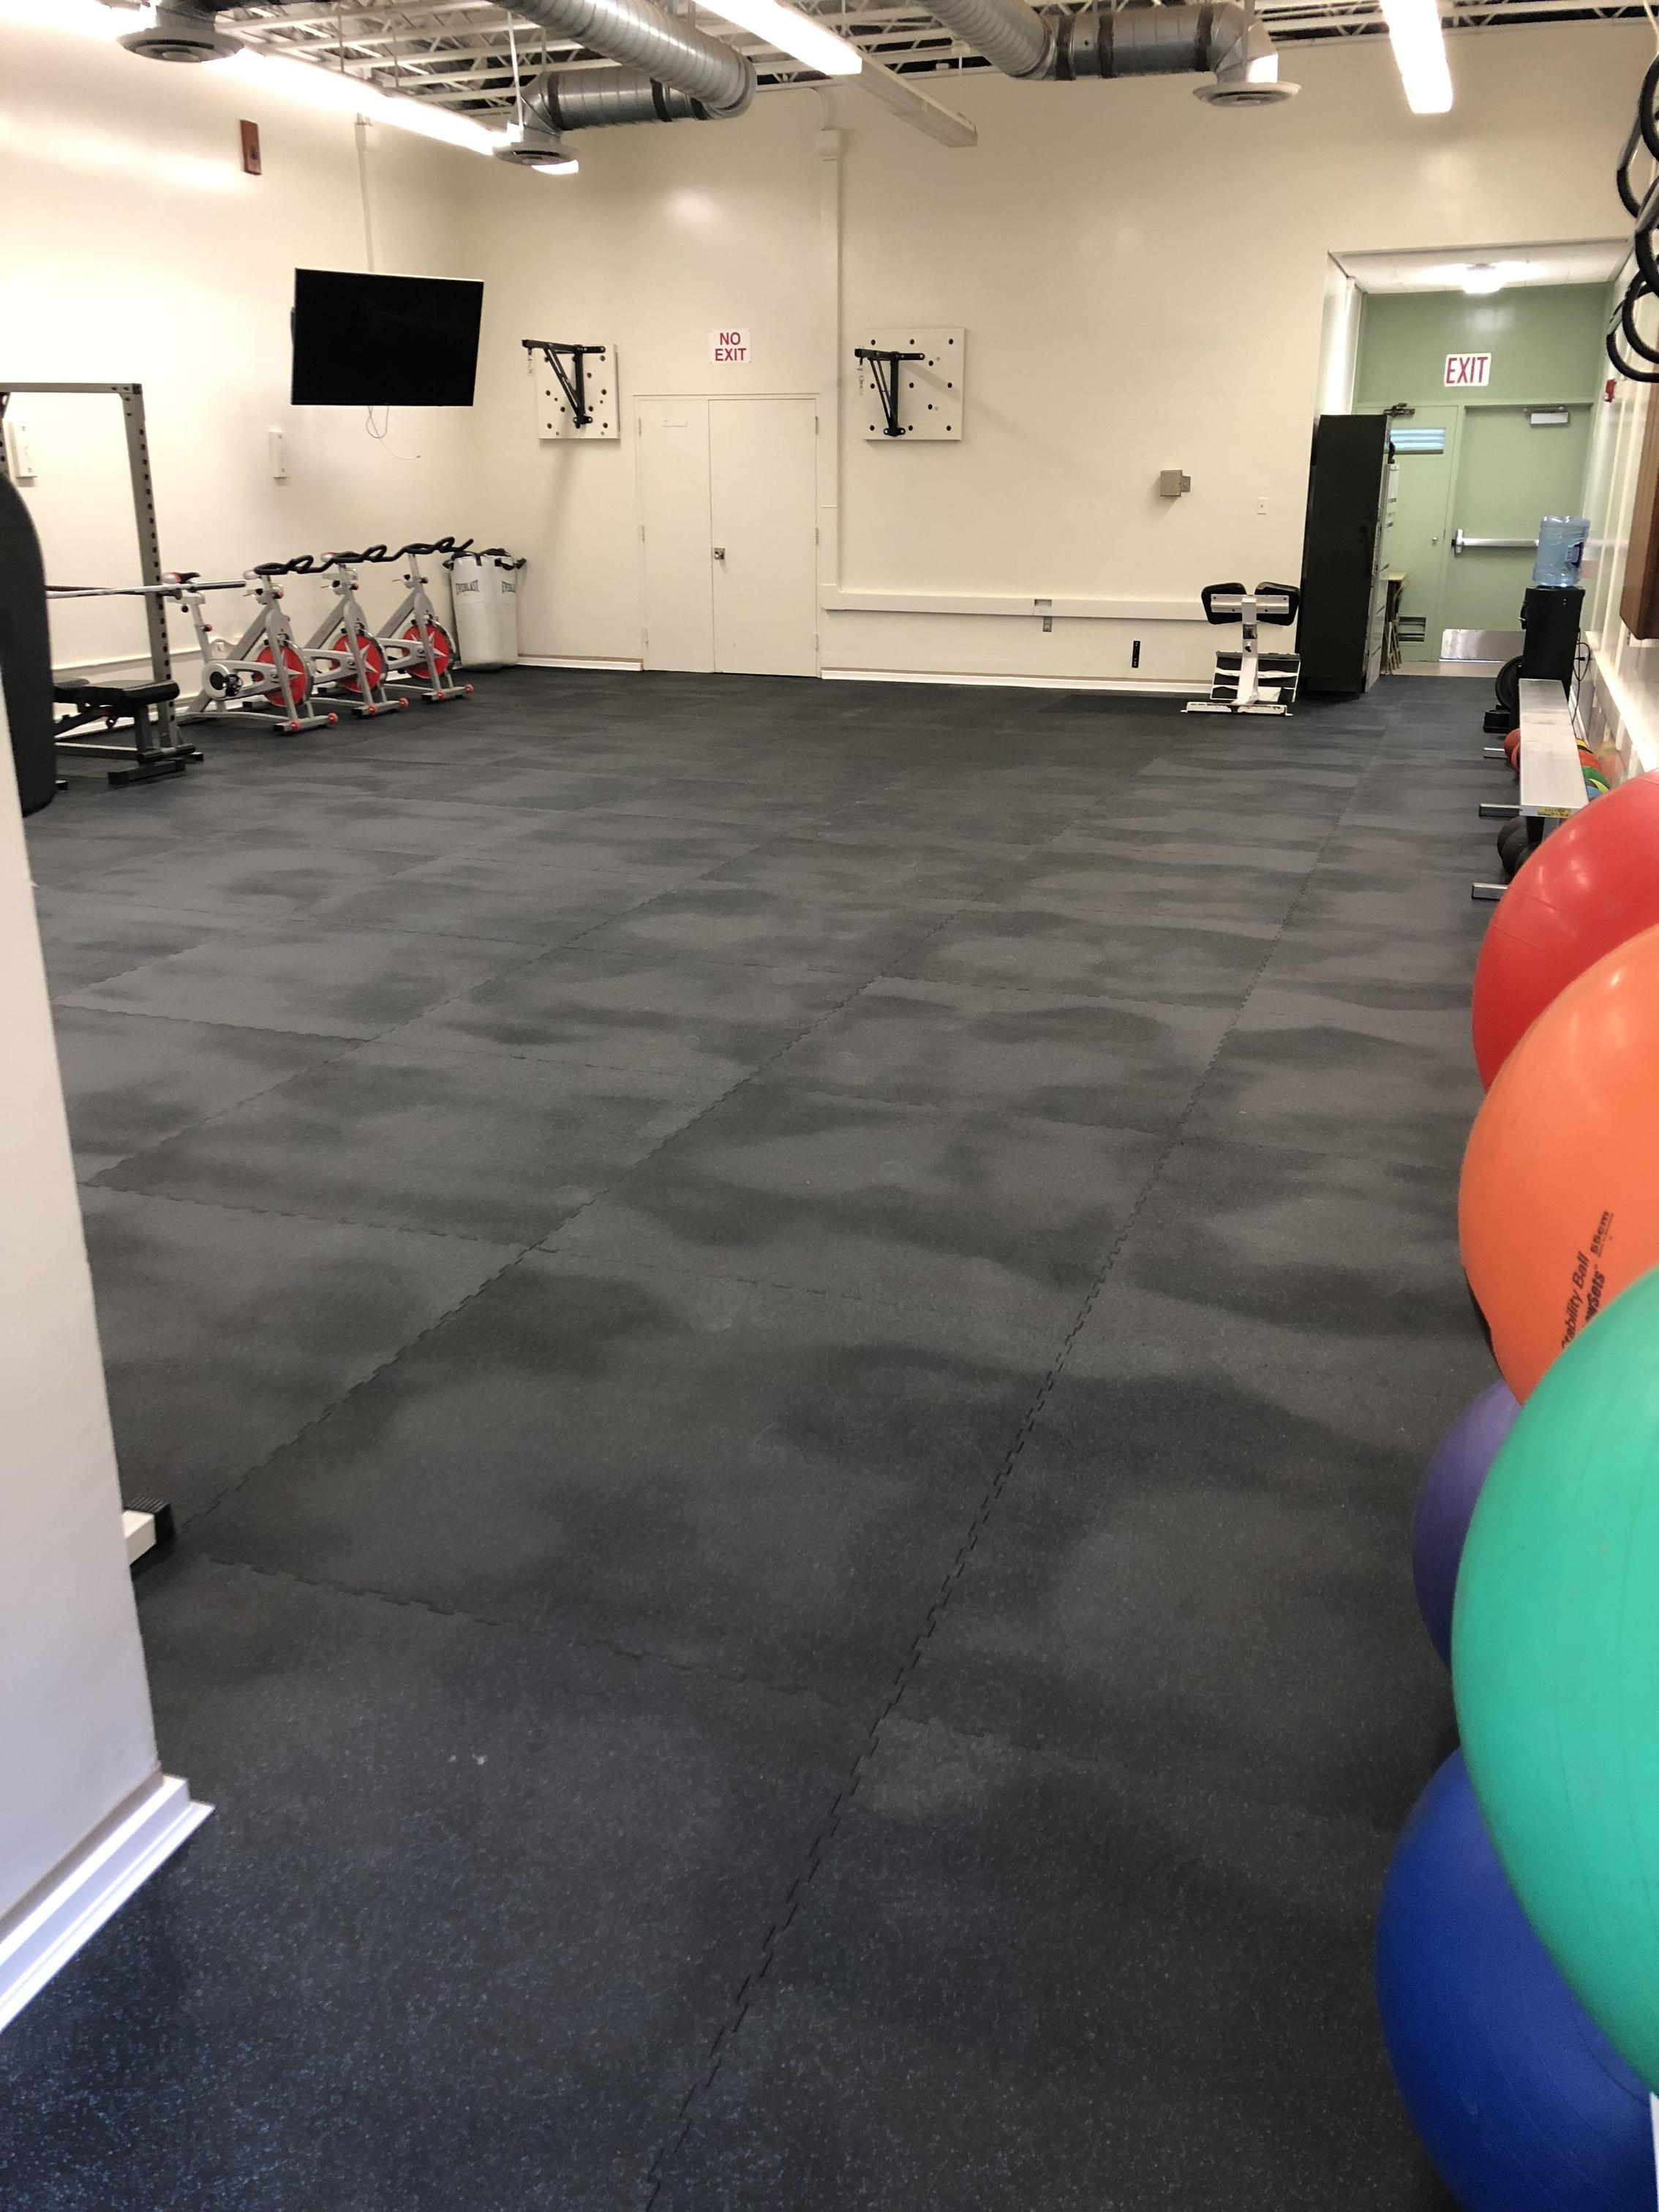 The new rubber floor is installed in Parks Team room....time to lift some weights!